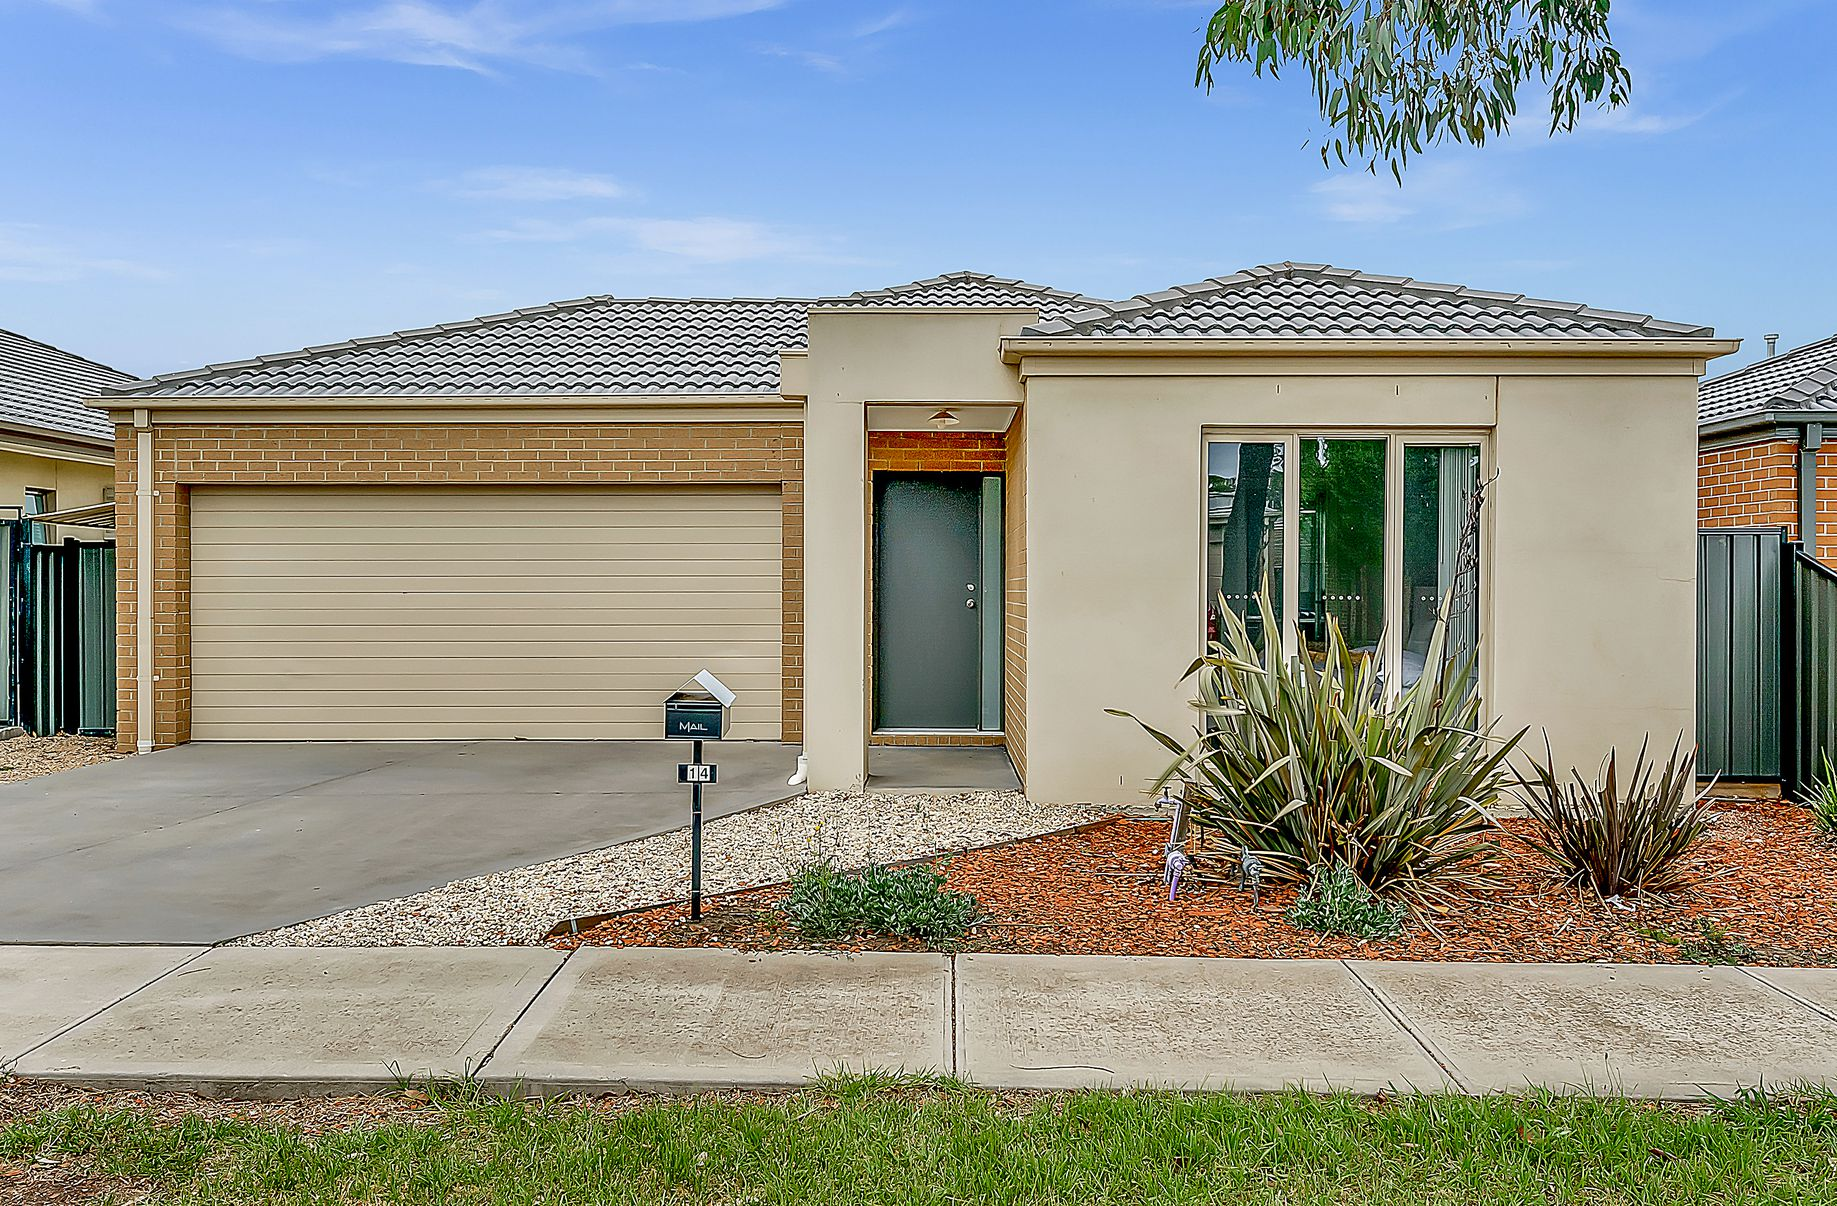 14 Pearce Way, Craigieburn